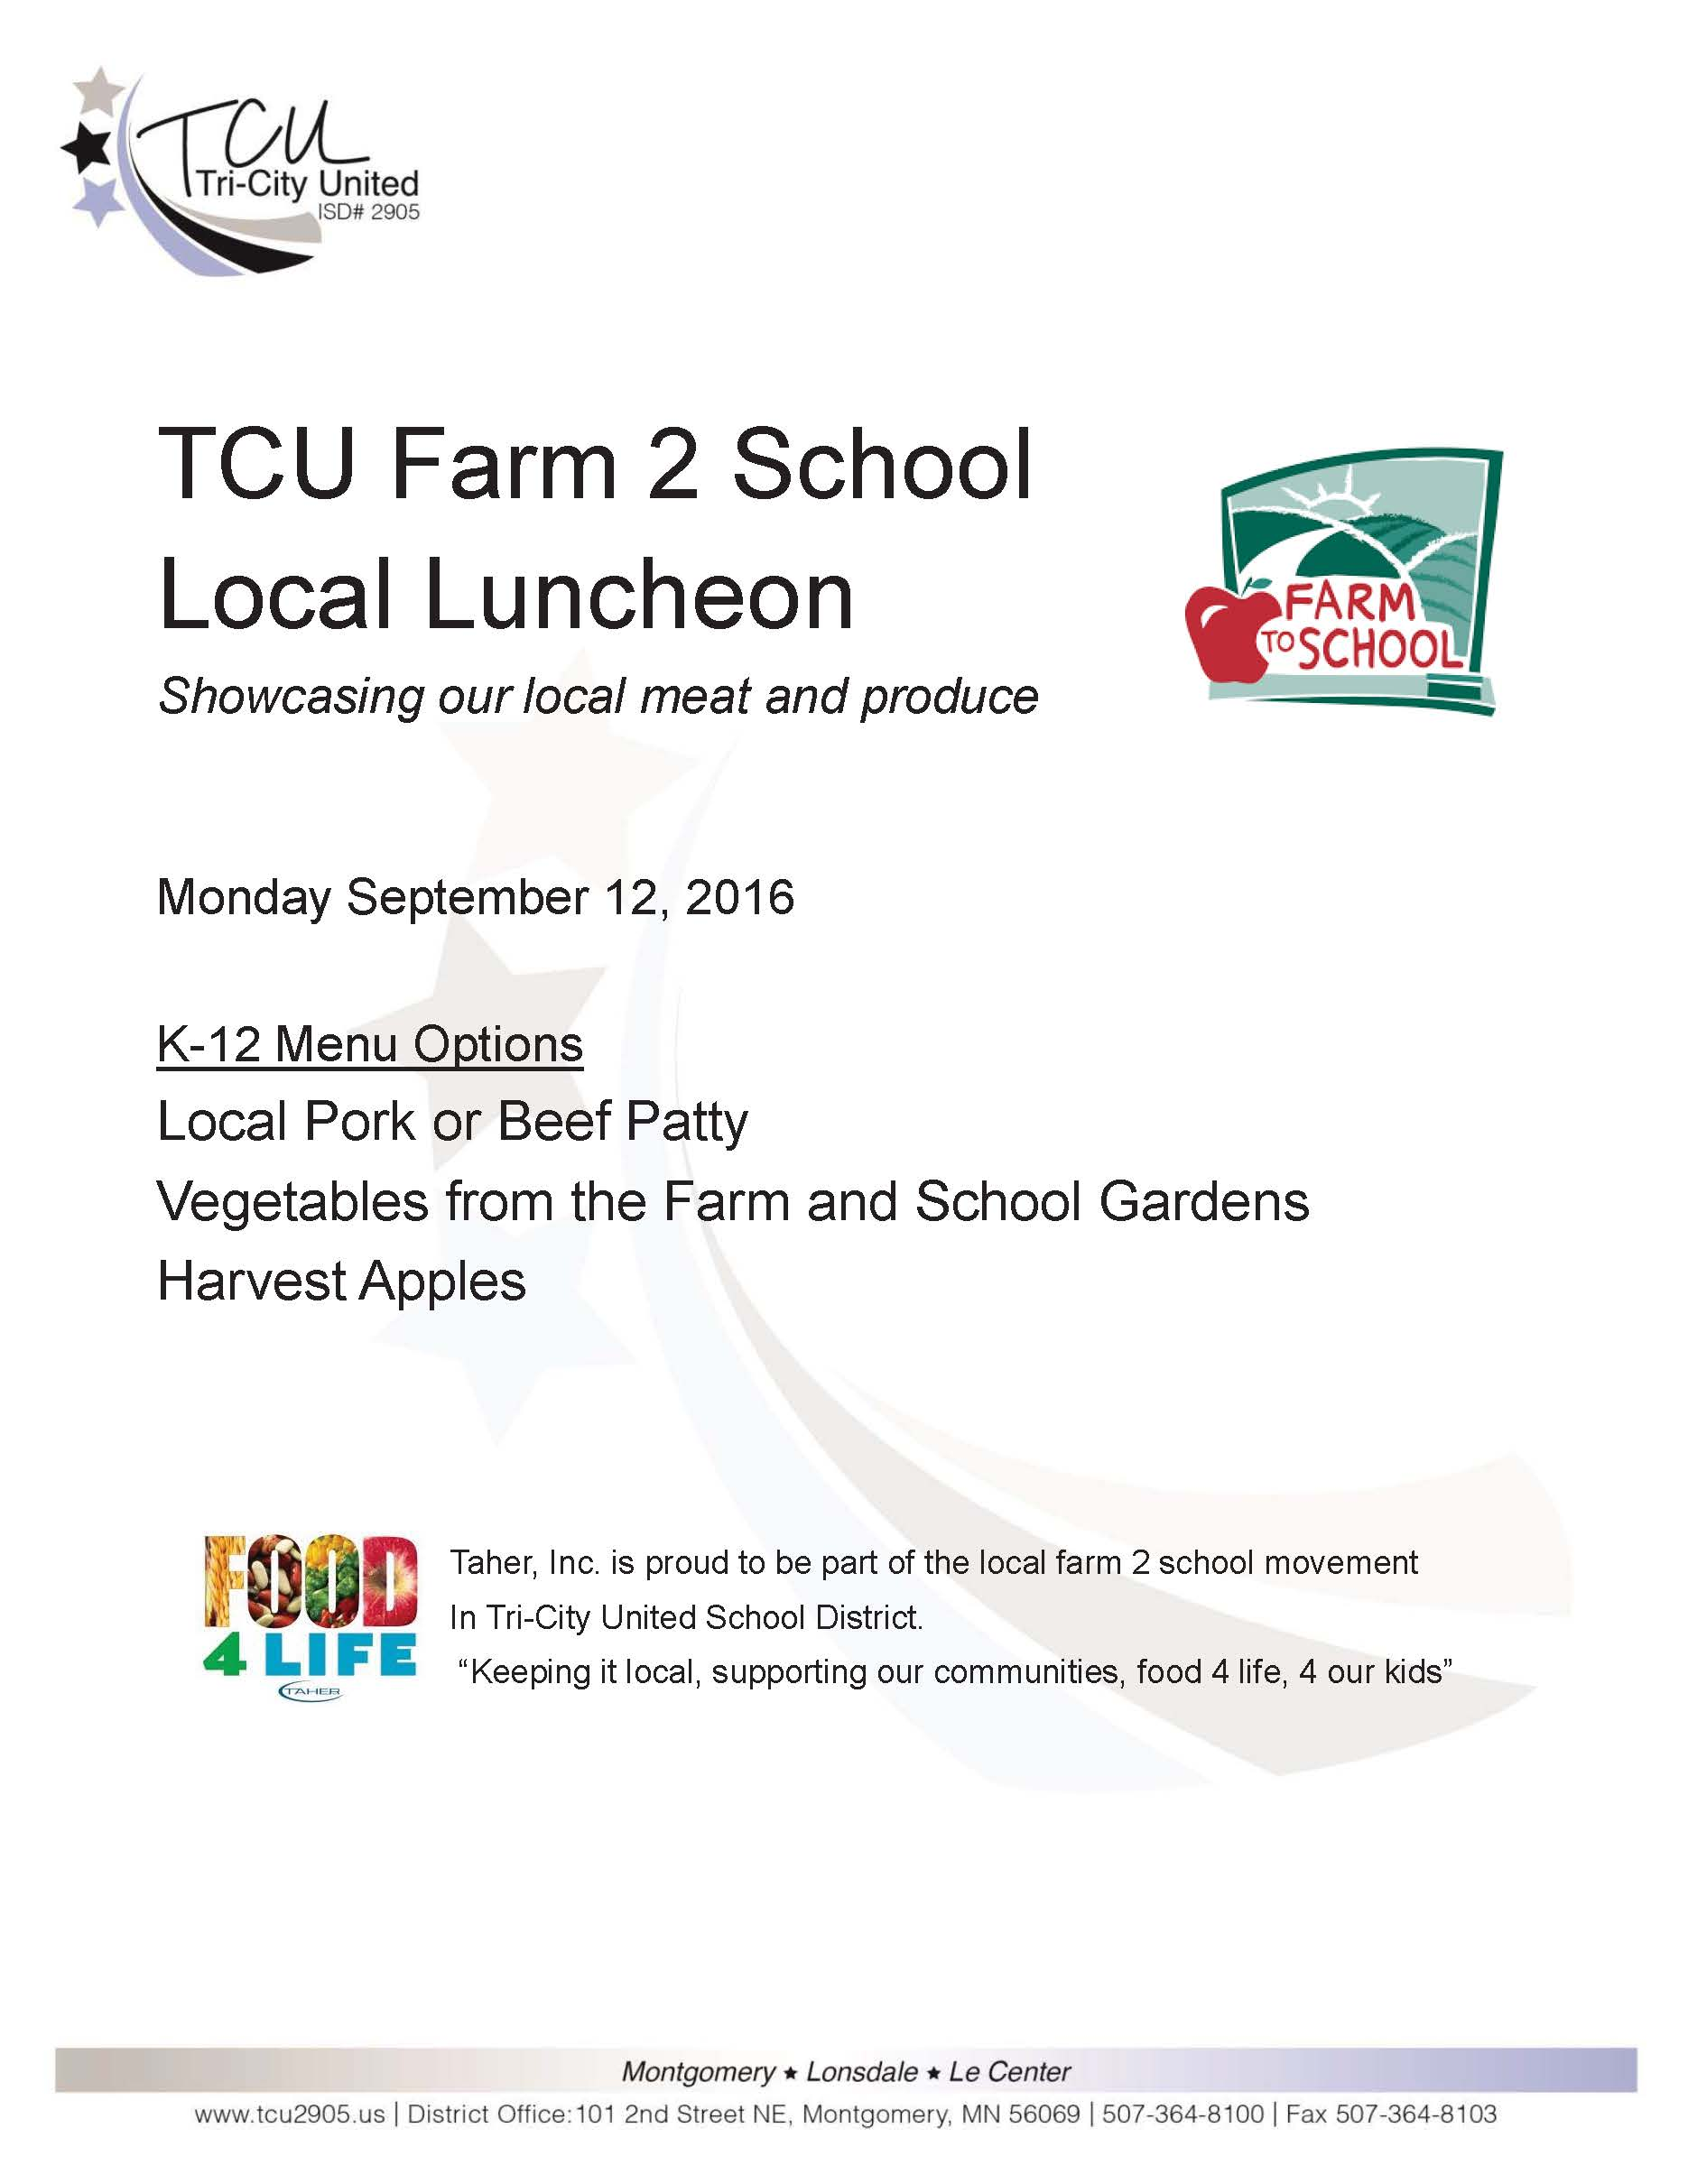 Farm to School Luncheon